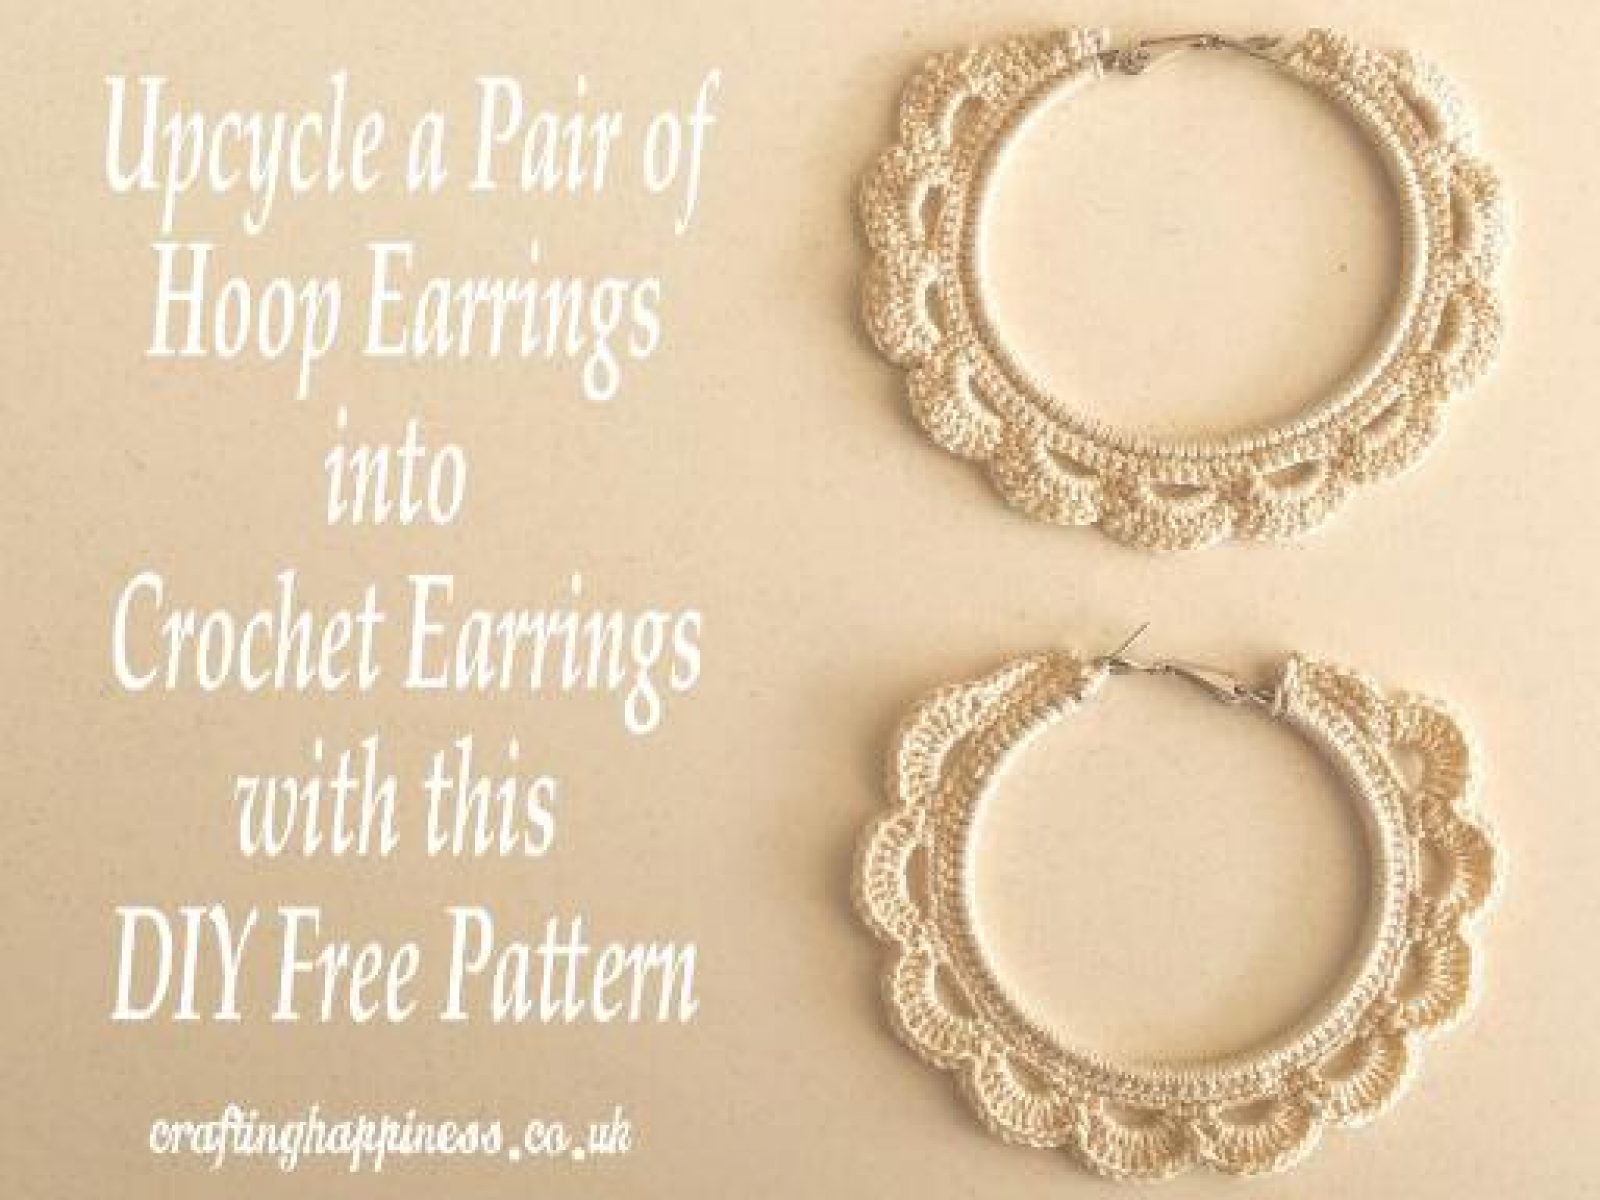 Upcycle a Pair of Old Hoop Earrings into Beautiful Crochet Earrings with this DIY Free Pattern